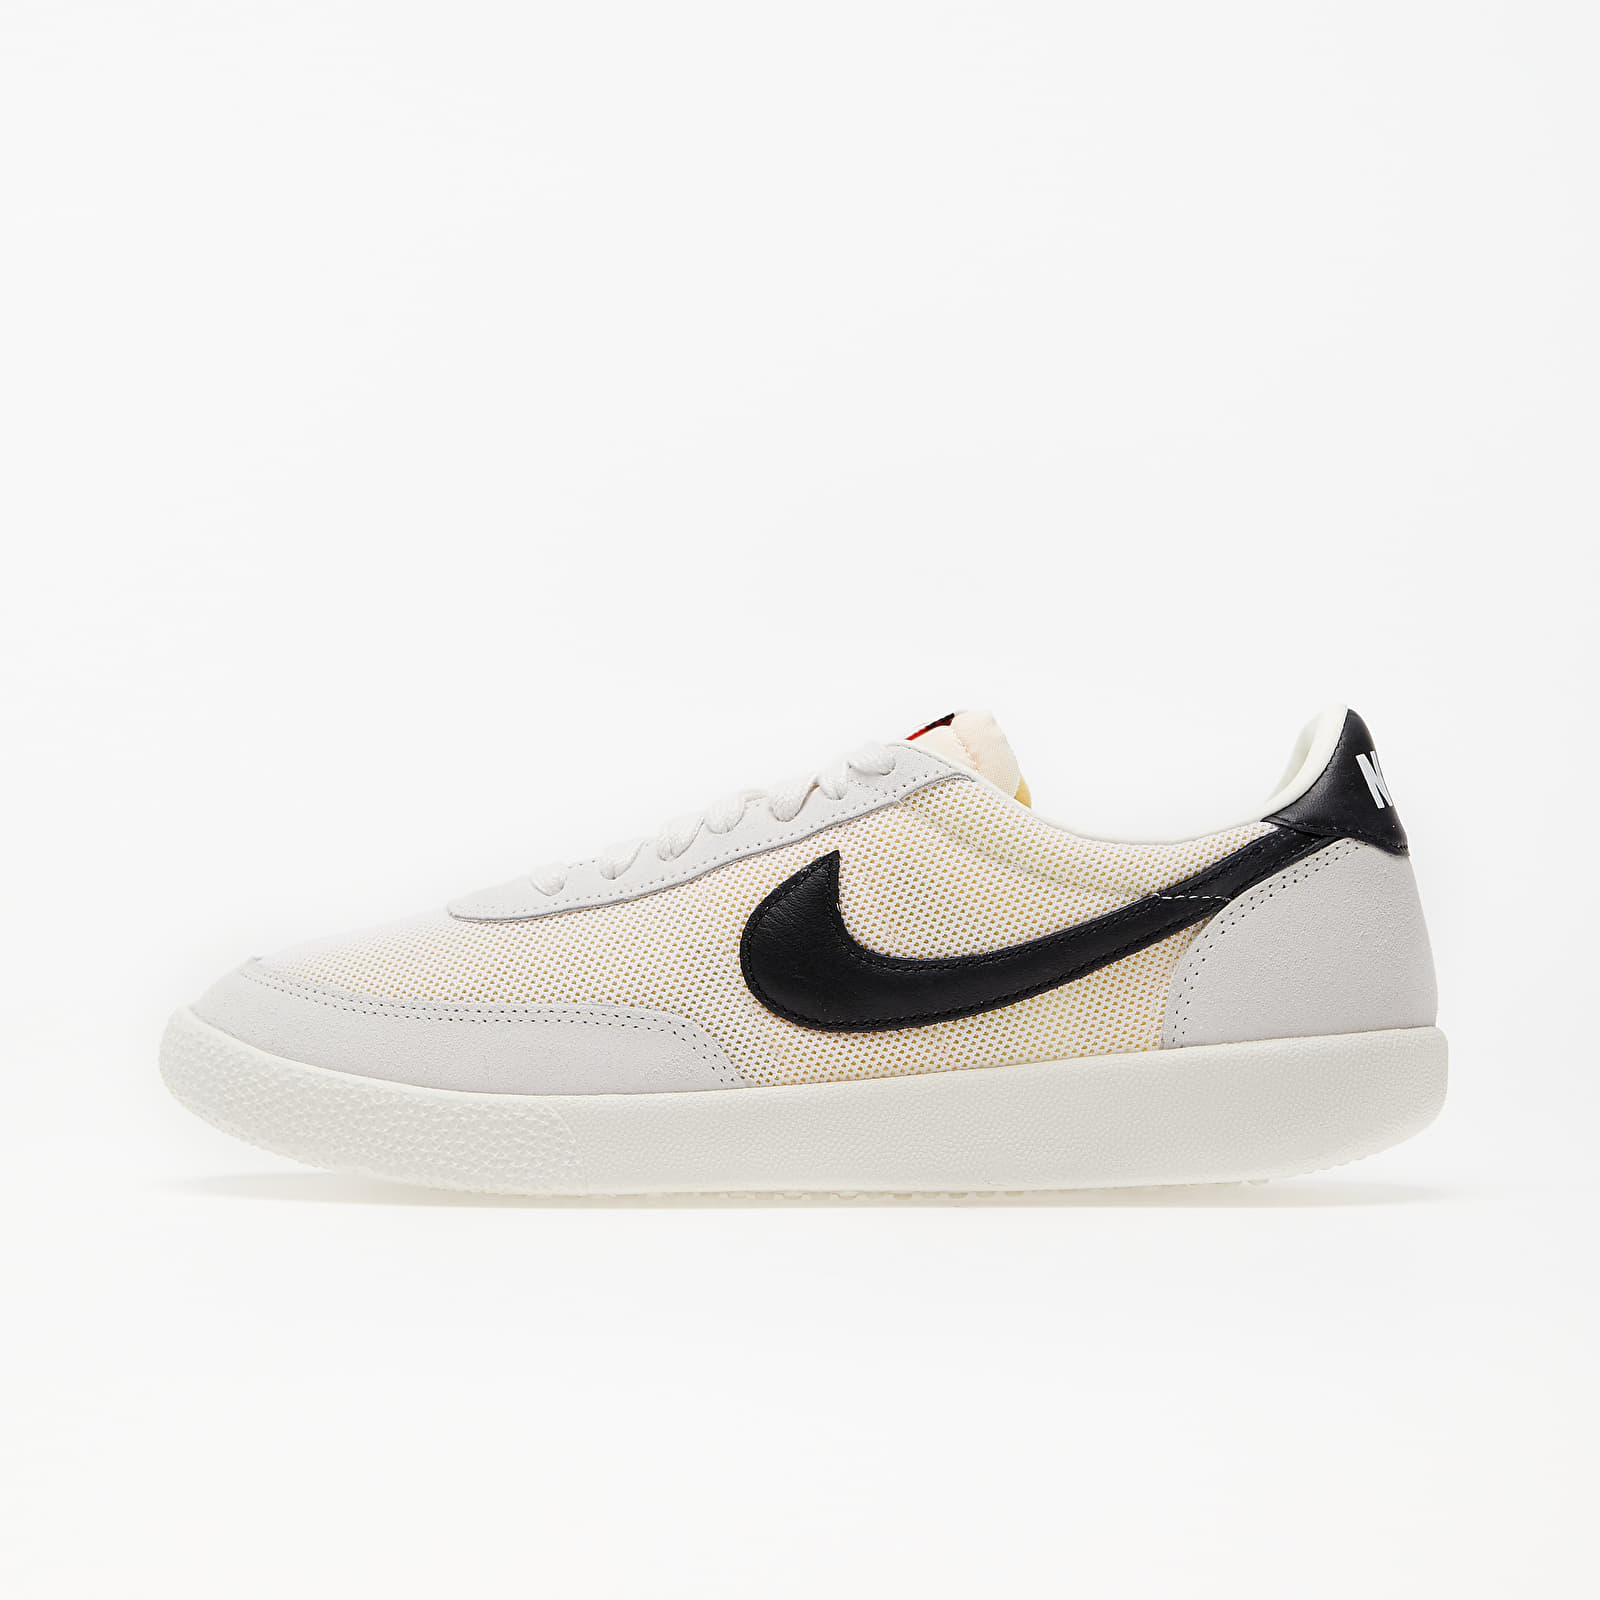 Nike Killshot OG Sail/ Black-Team Orange EUR 40.5